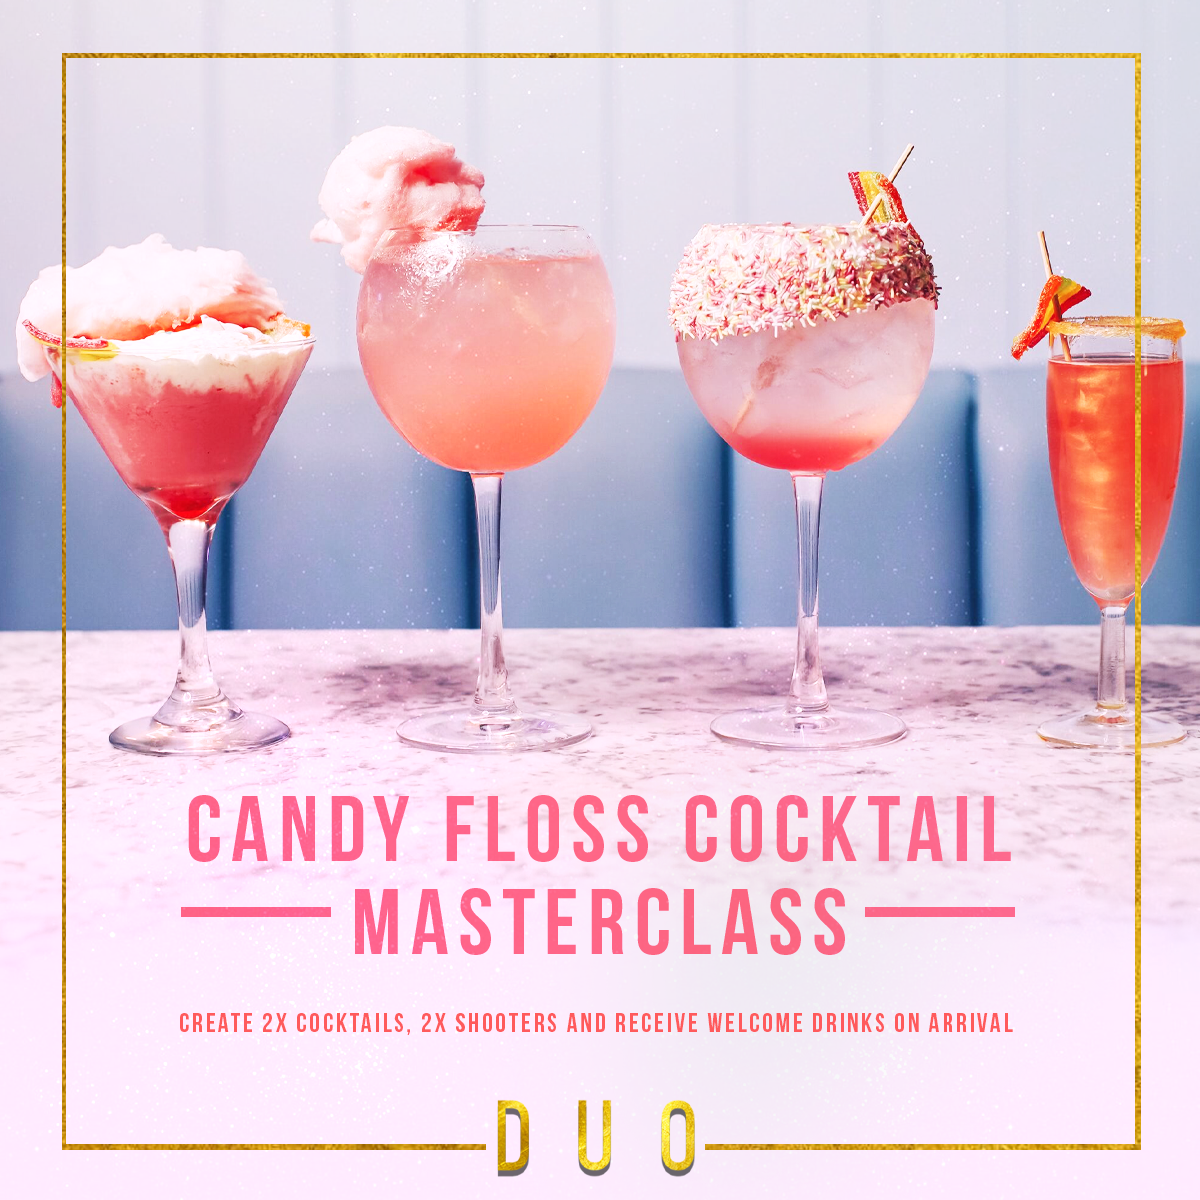 Instagram Cocktail Masterclass